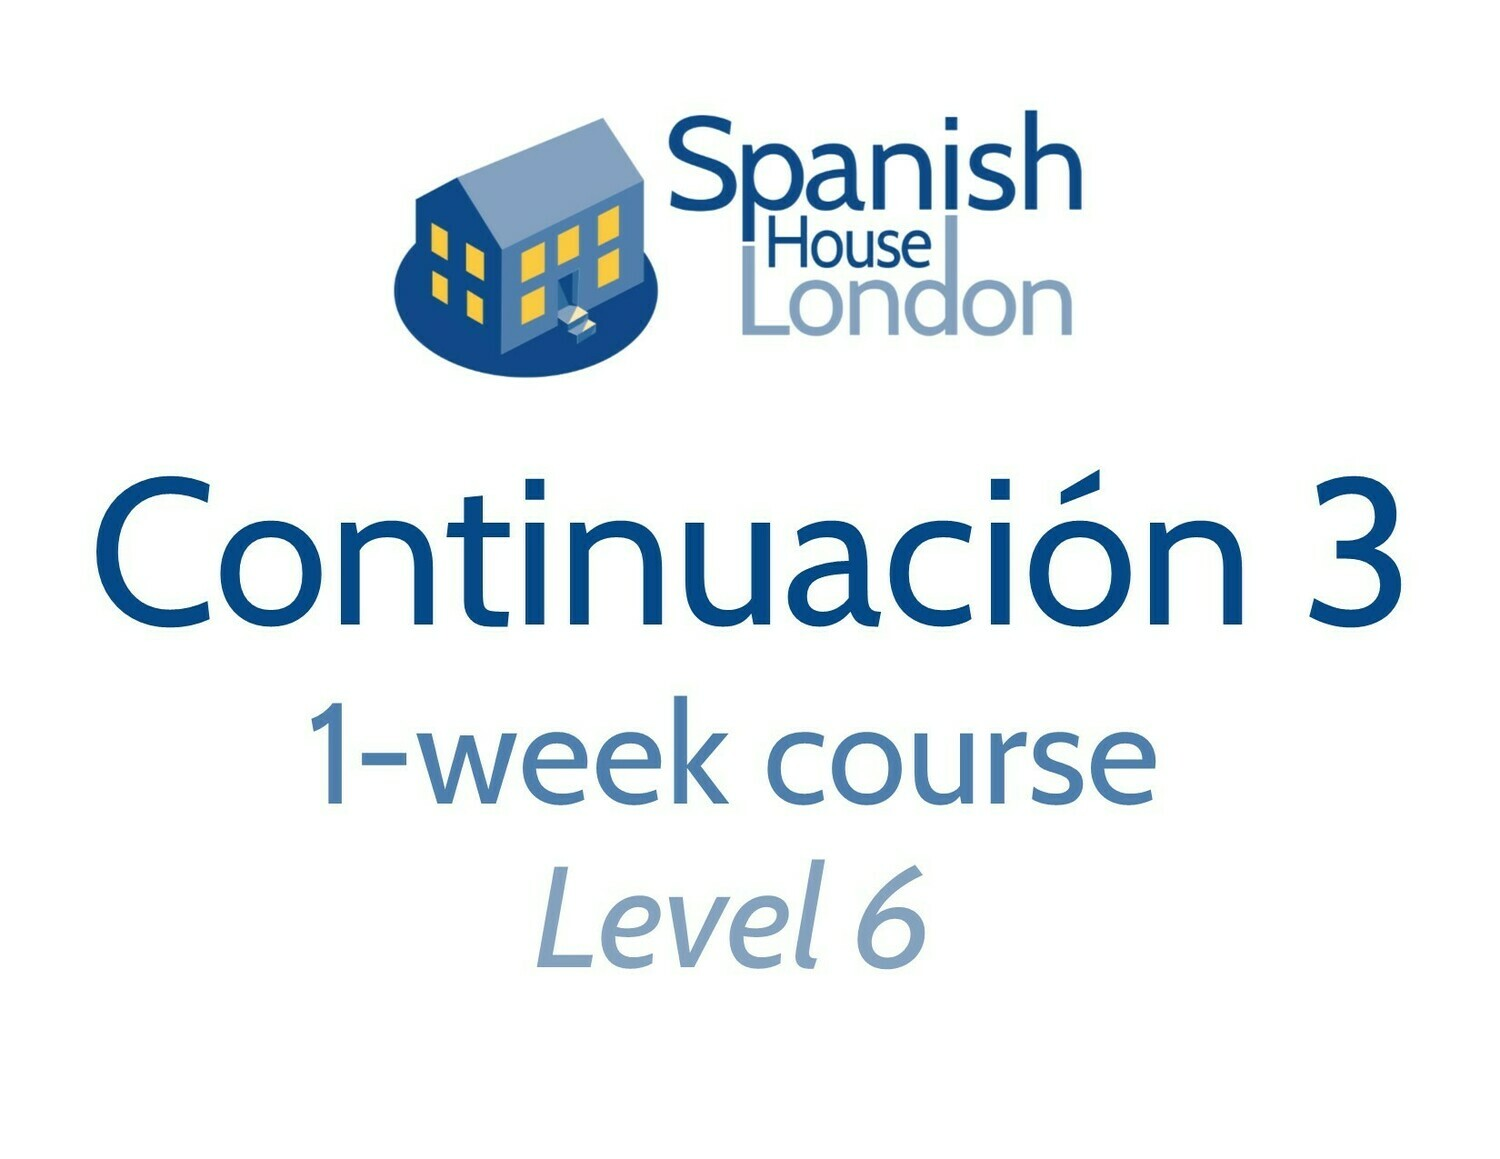 Continuación 3 One-Week Intensive Course starting on 14th October at 10am in Clapham North